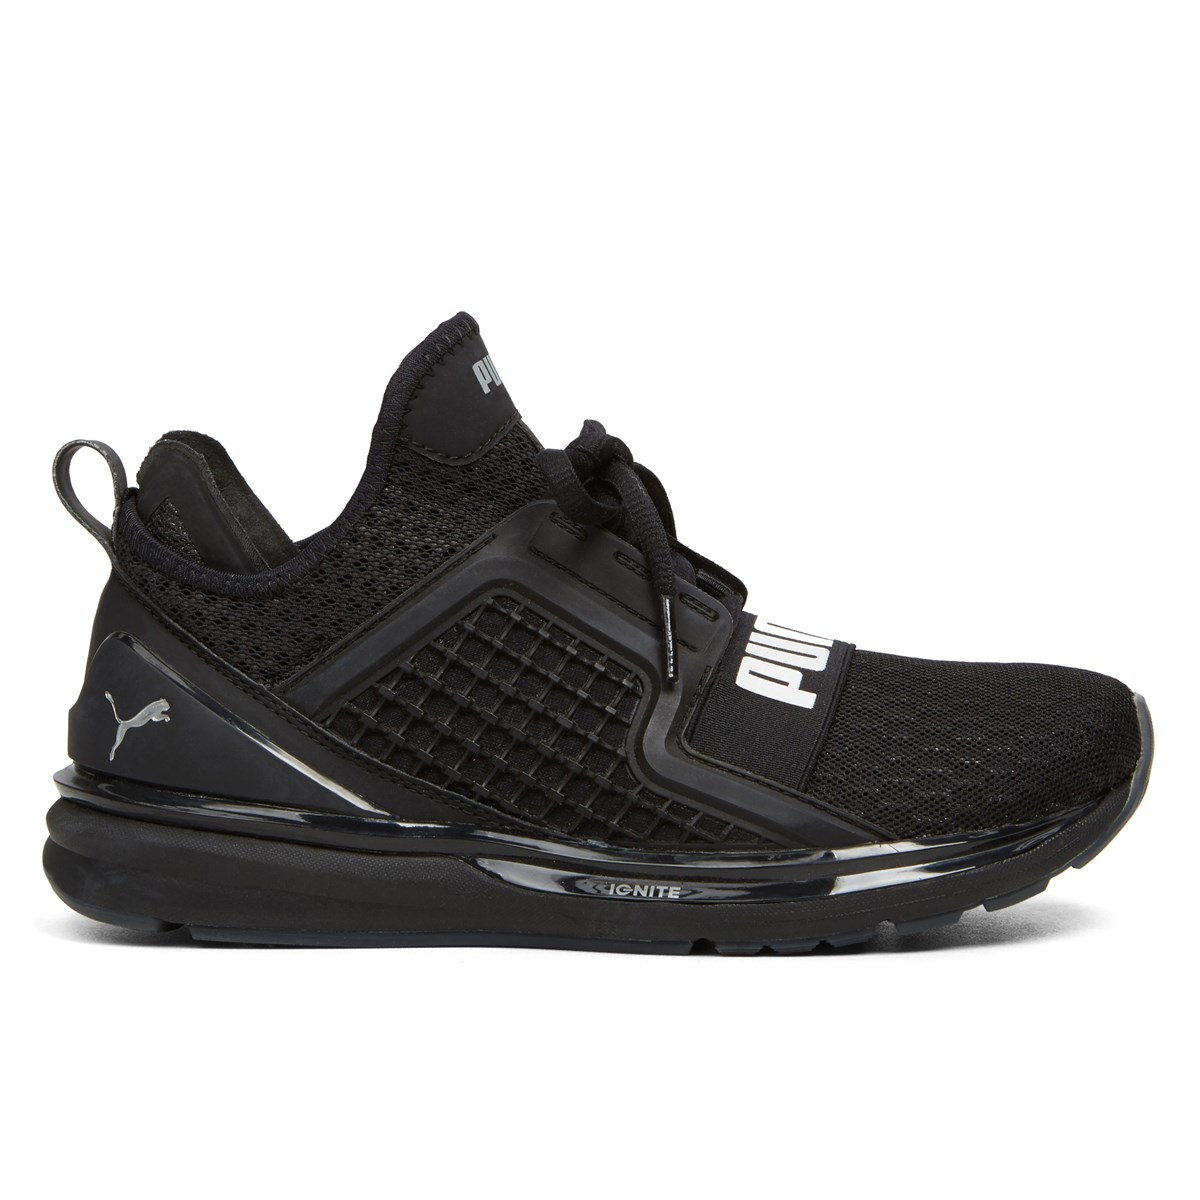 Men's Ignite Limitless Core Black Sneaker